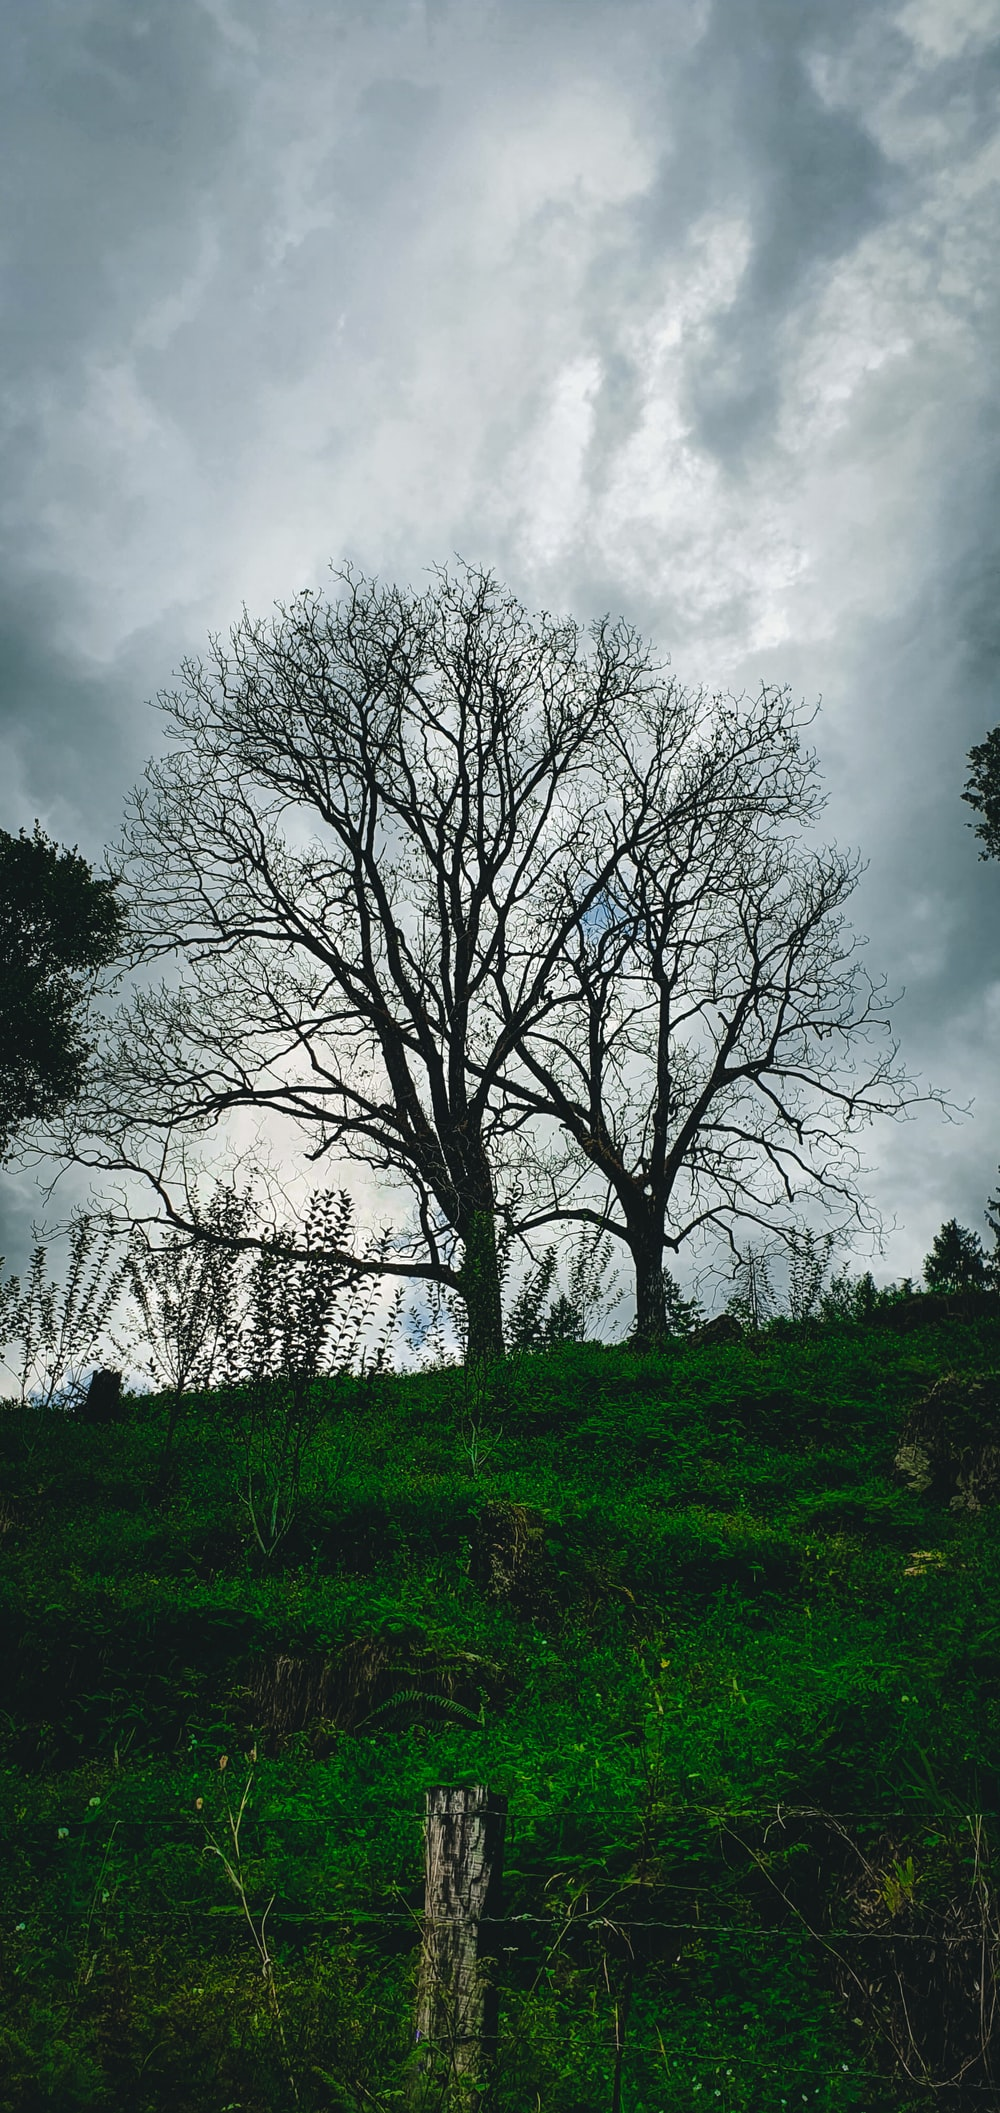 leafless trees on green grass field under cloudy sky